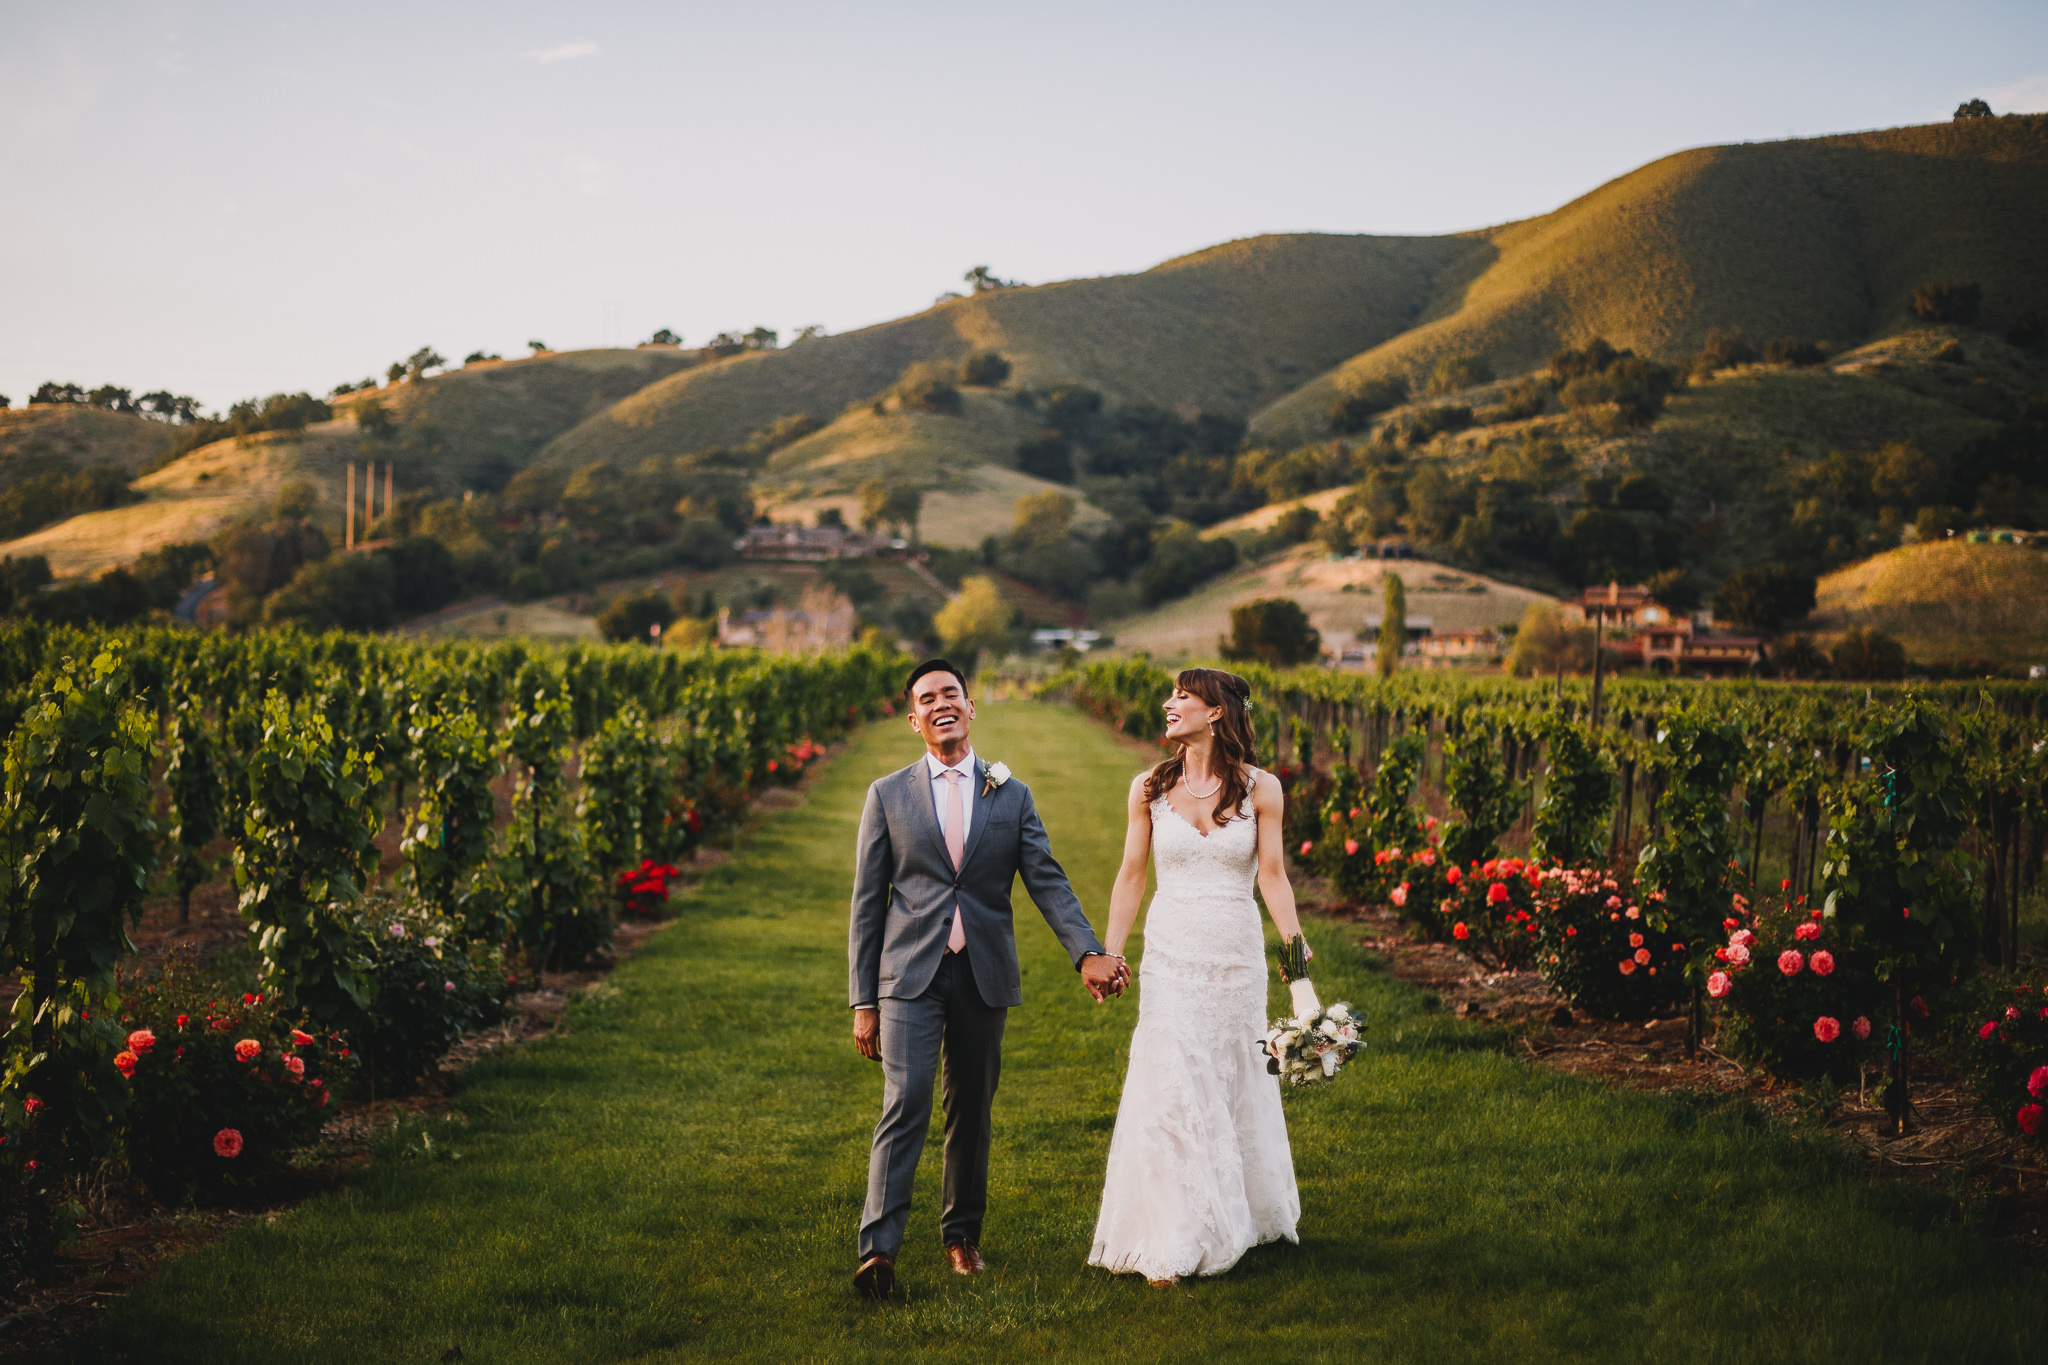 Archer Inspired Photography Kirigin Cellars Gilroy California SoCal Orange County Los Angeles Long Beach Lifestyle Wedding Elopement Engagement Photographer-463.jpg